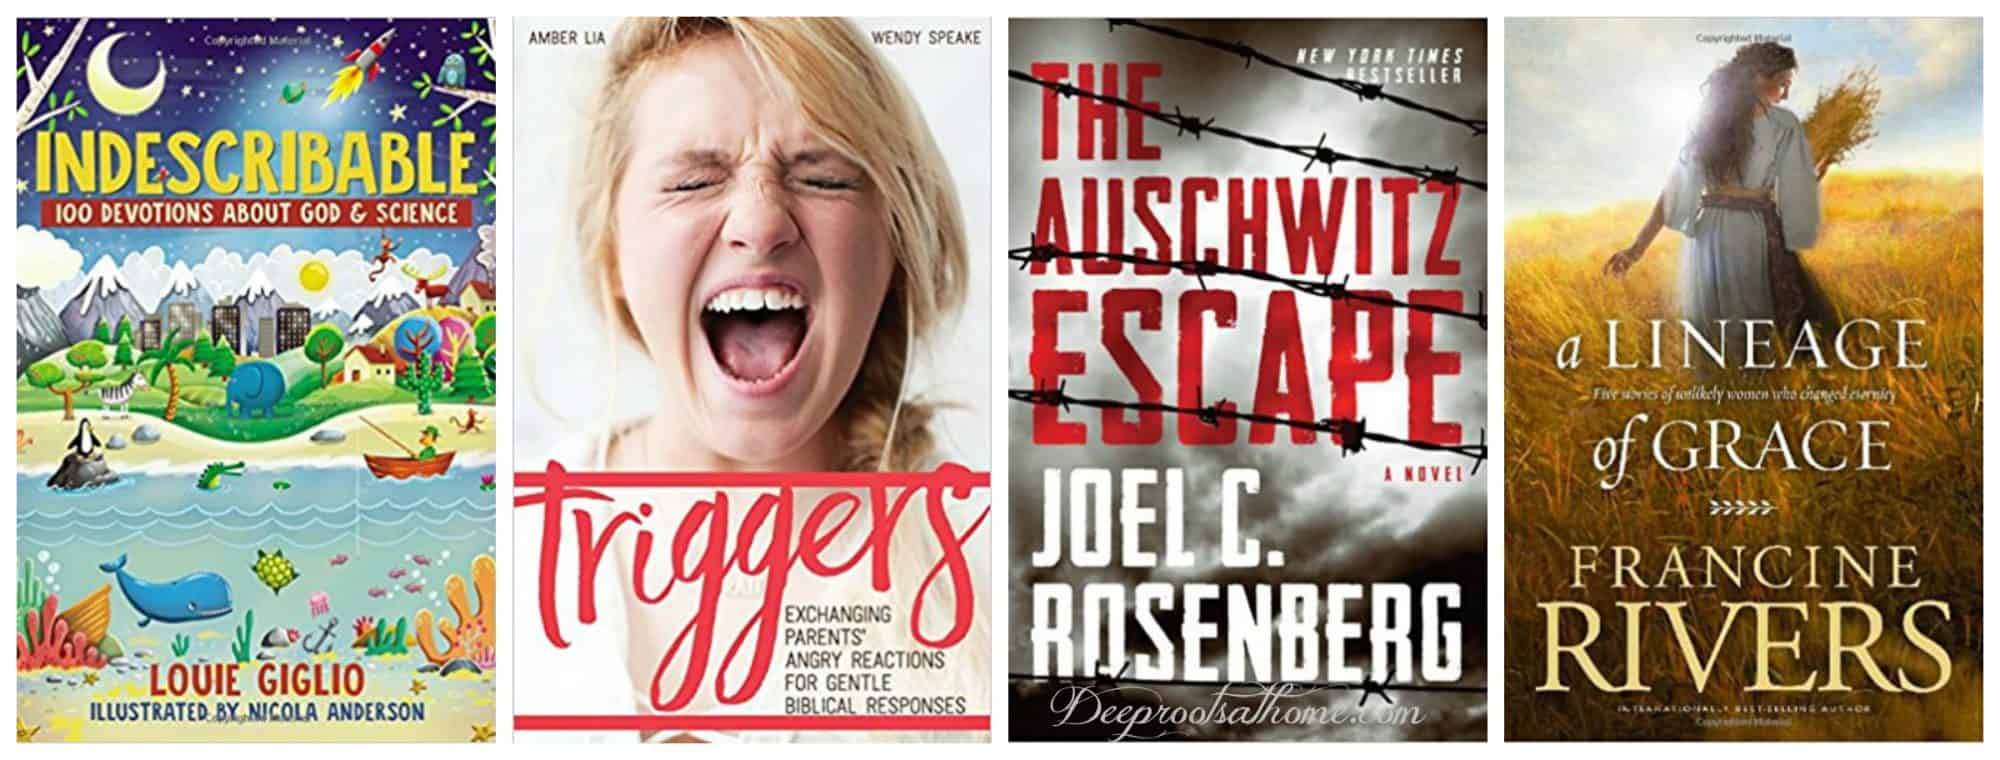 2018 Reading List: New and {Worthy To Be Revisited} Older Books. 4 book covers: The Auschwitz Escape by Joel C. Rosenberg;Indescribable: 100 Devotions for KidsbyLouie Giglio;Triggers, Parents' Angry Reactions, Gentle Biblical Responses byAmber Lia and Lineage of Grace byFrancine Rivers.